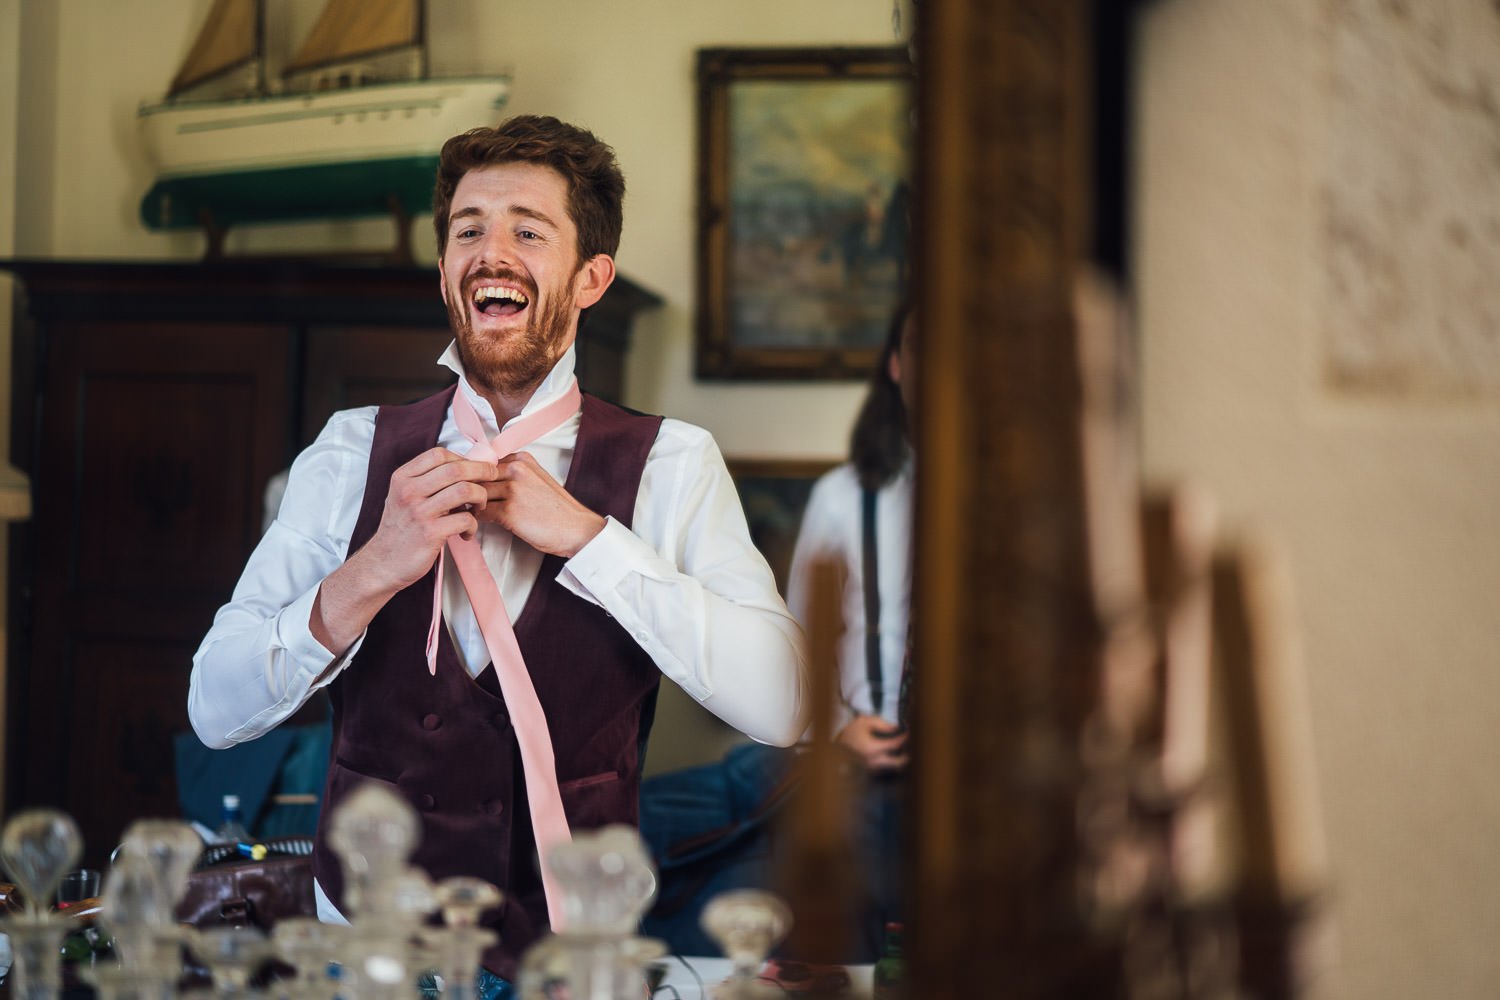 Asos wedding suit in Bordeaux Chateau wedding by creative destination wedding photographer the shannons photography